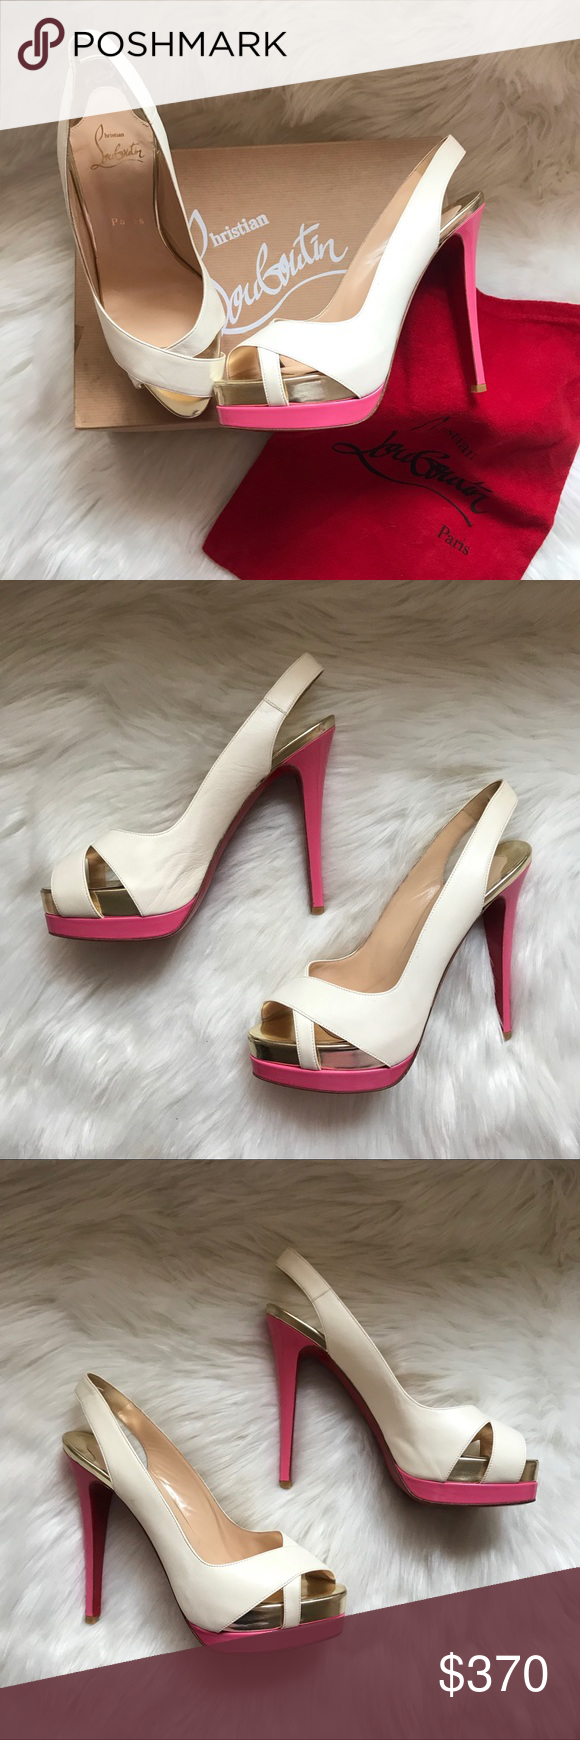 Authentic CHRISTIAN LOUBOUTIN Very Croisse Shoes A stunning